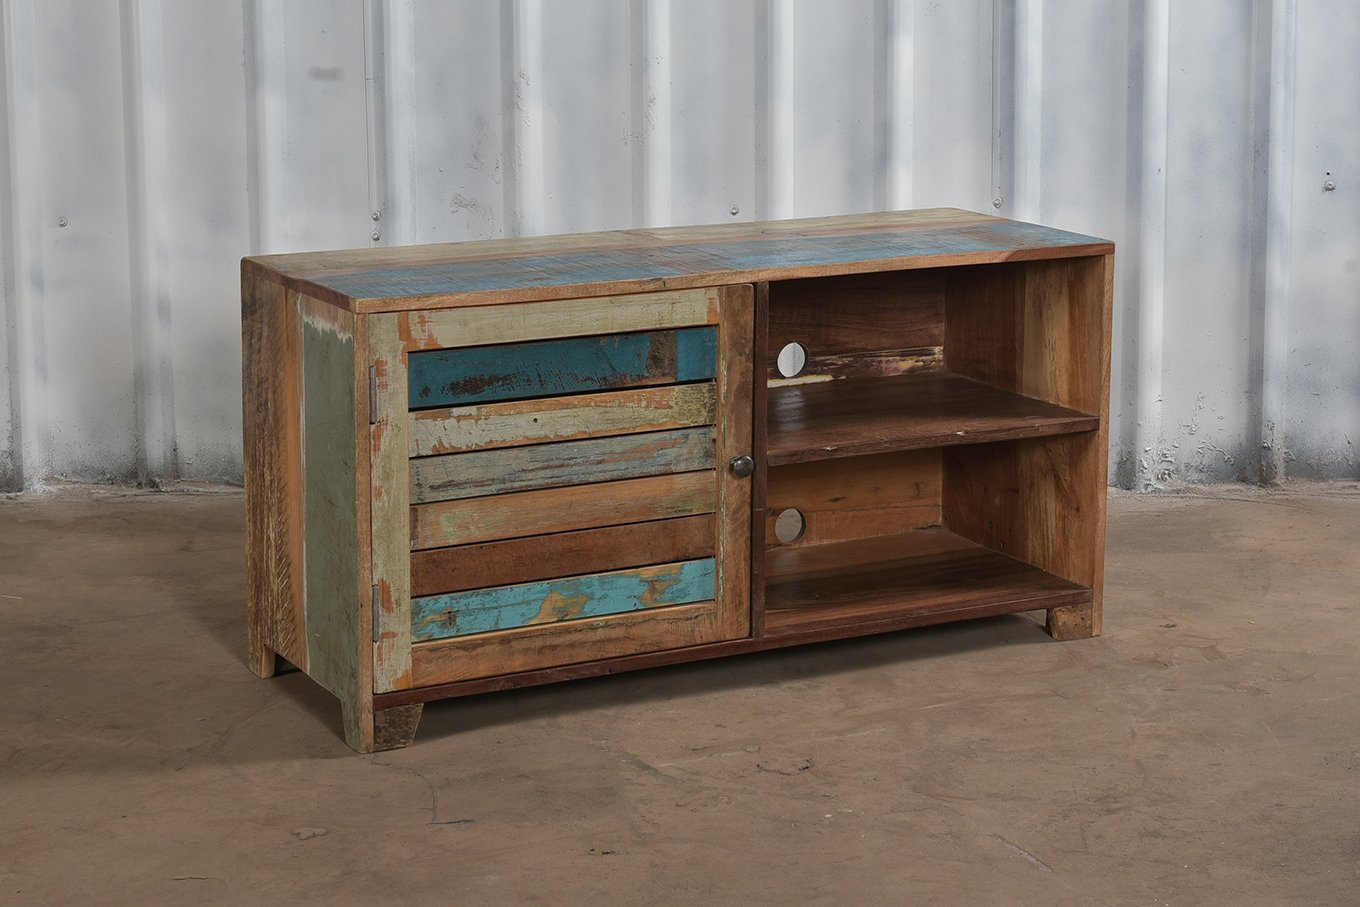 Colourful reclaimed wooden media unit